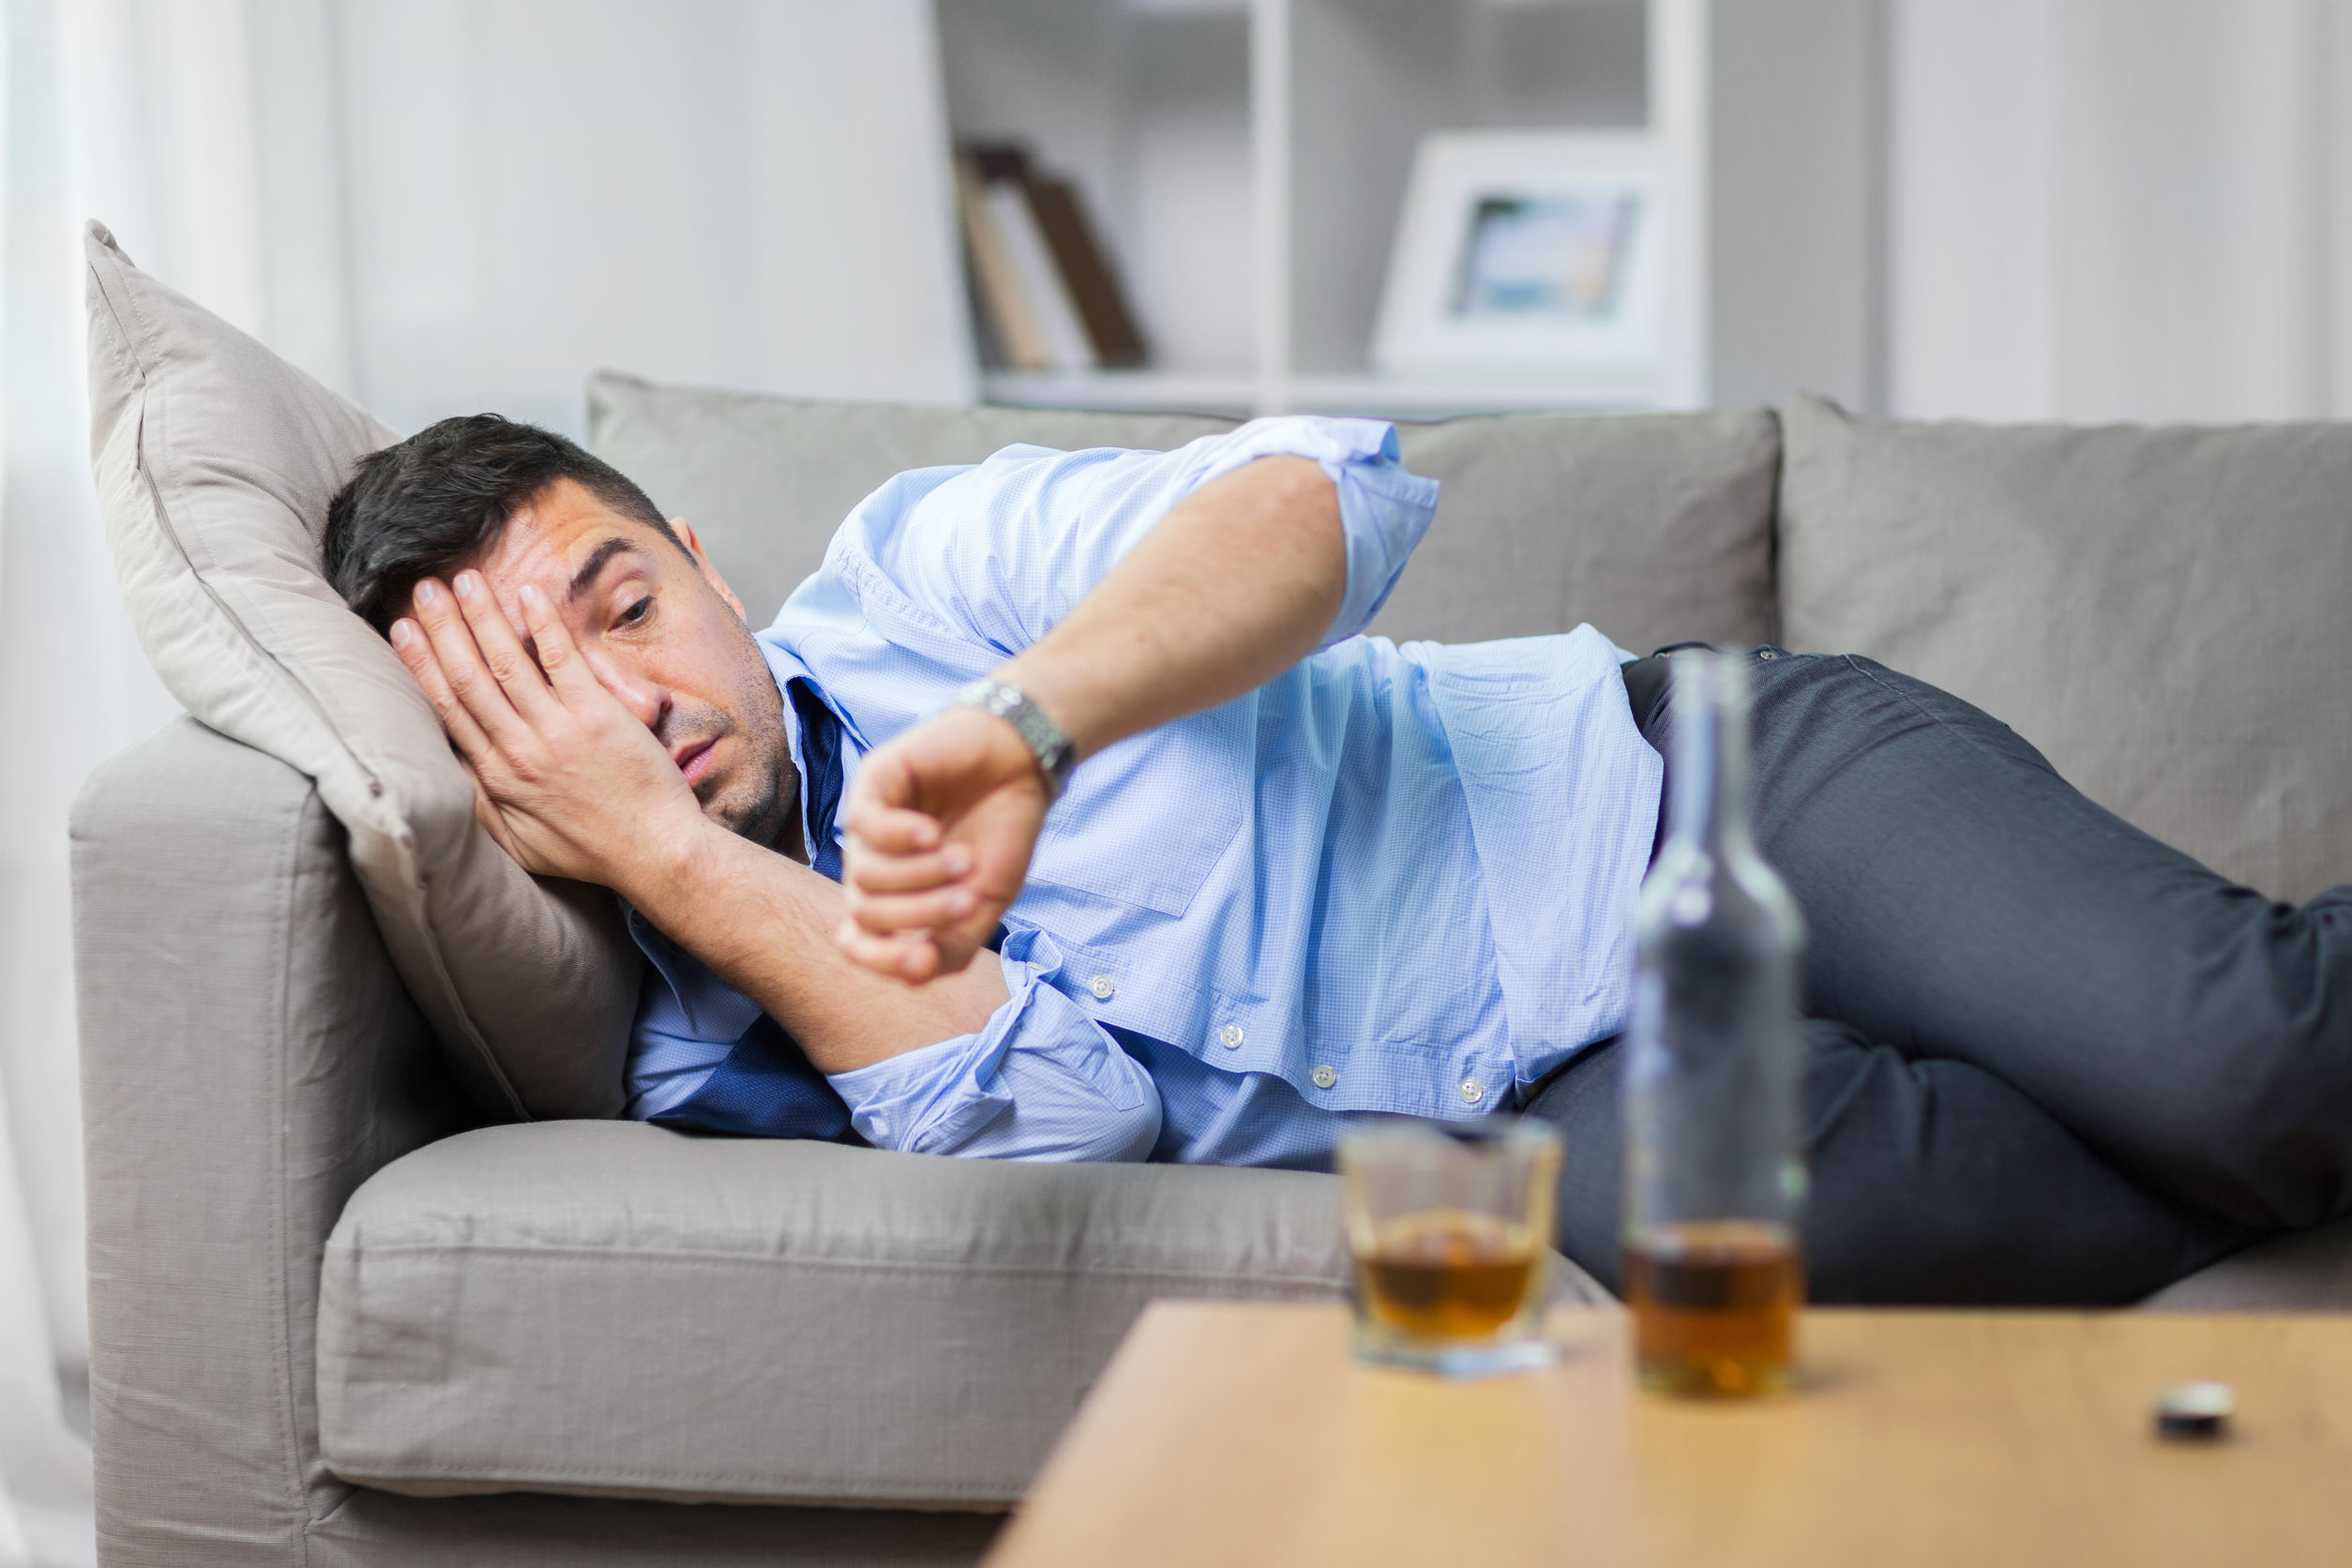 What Employers Need To Know About Substance Misuse In The Workplace